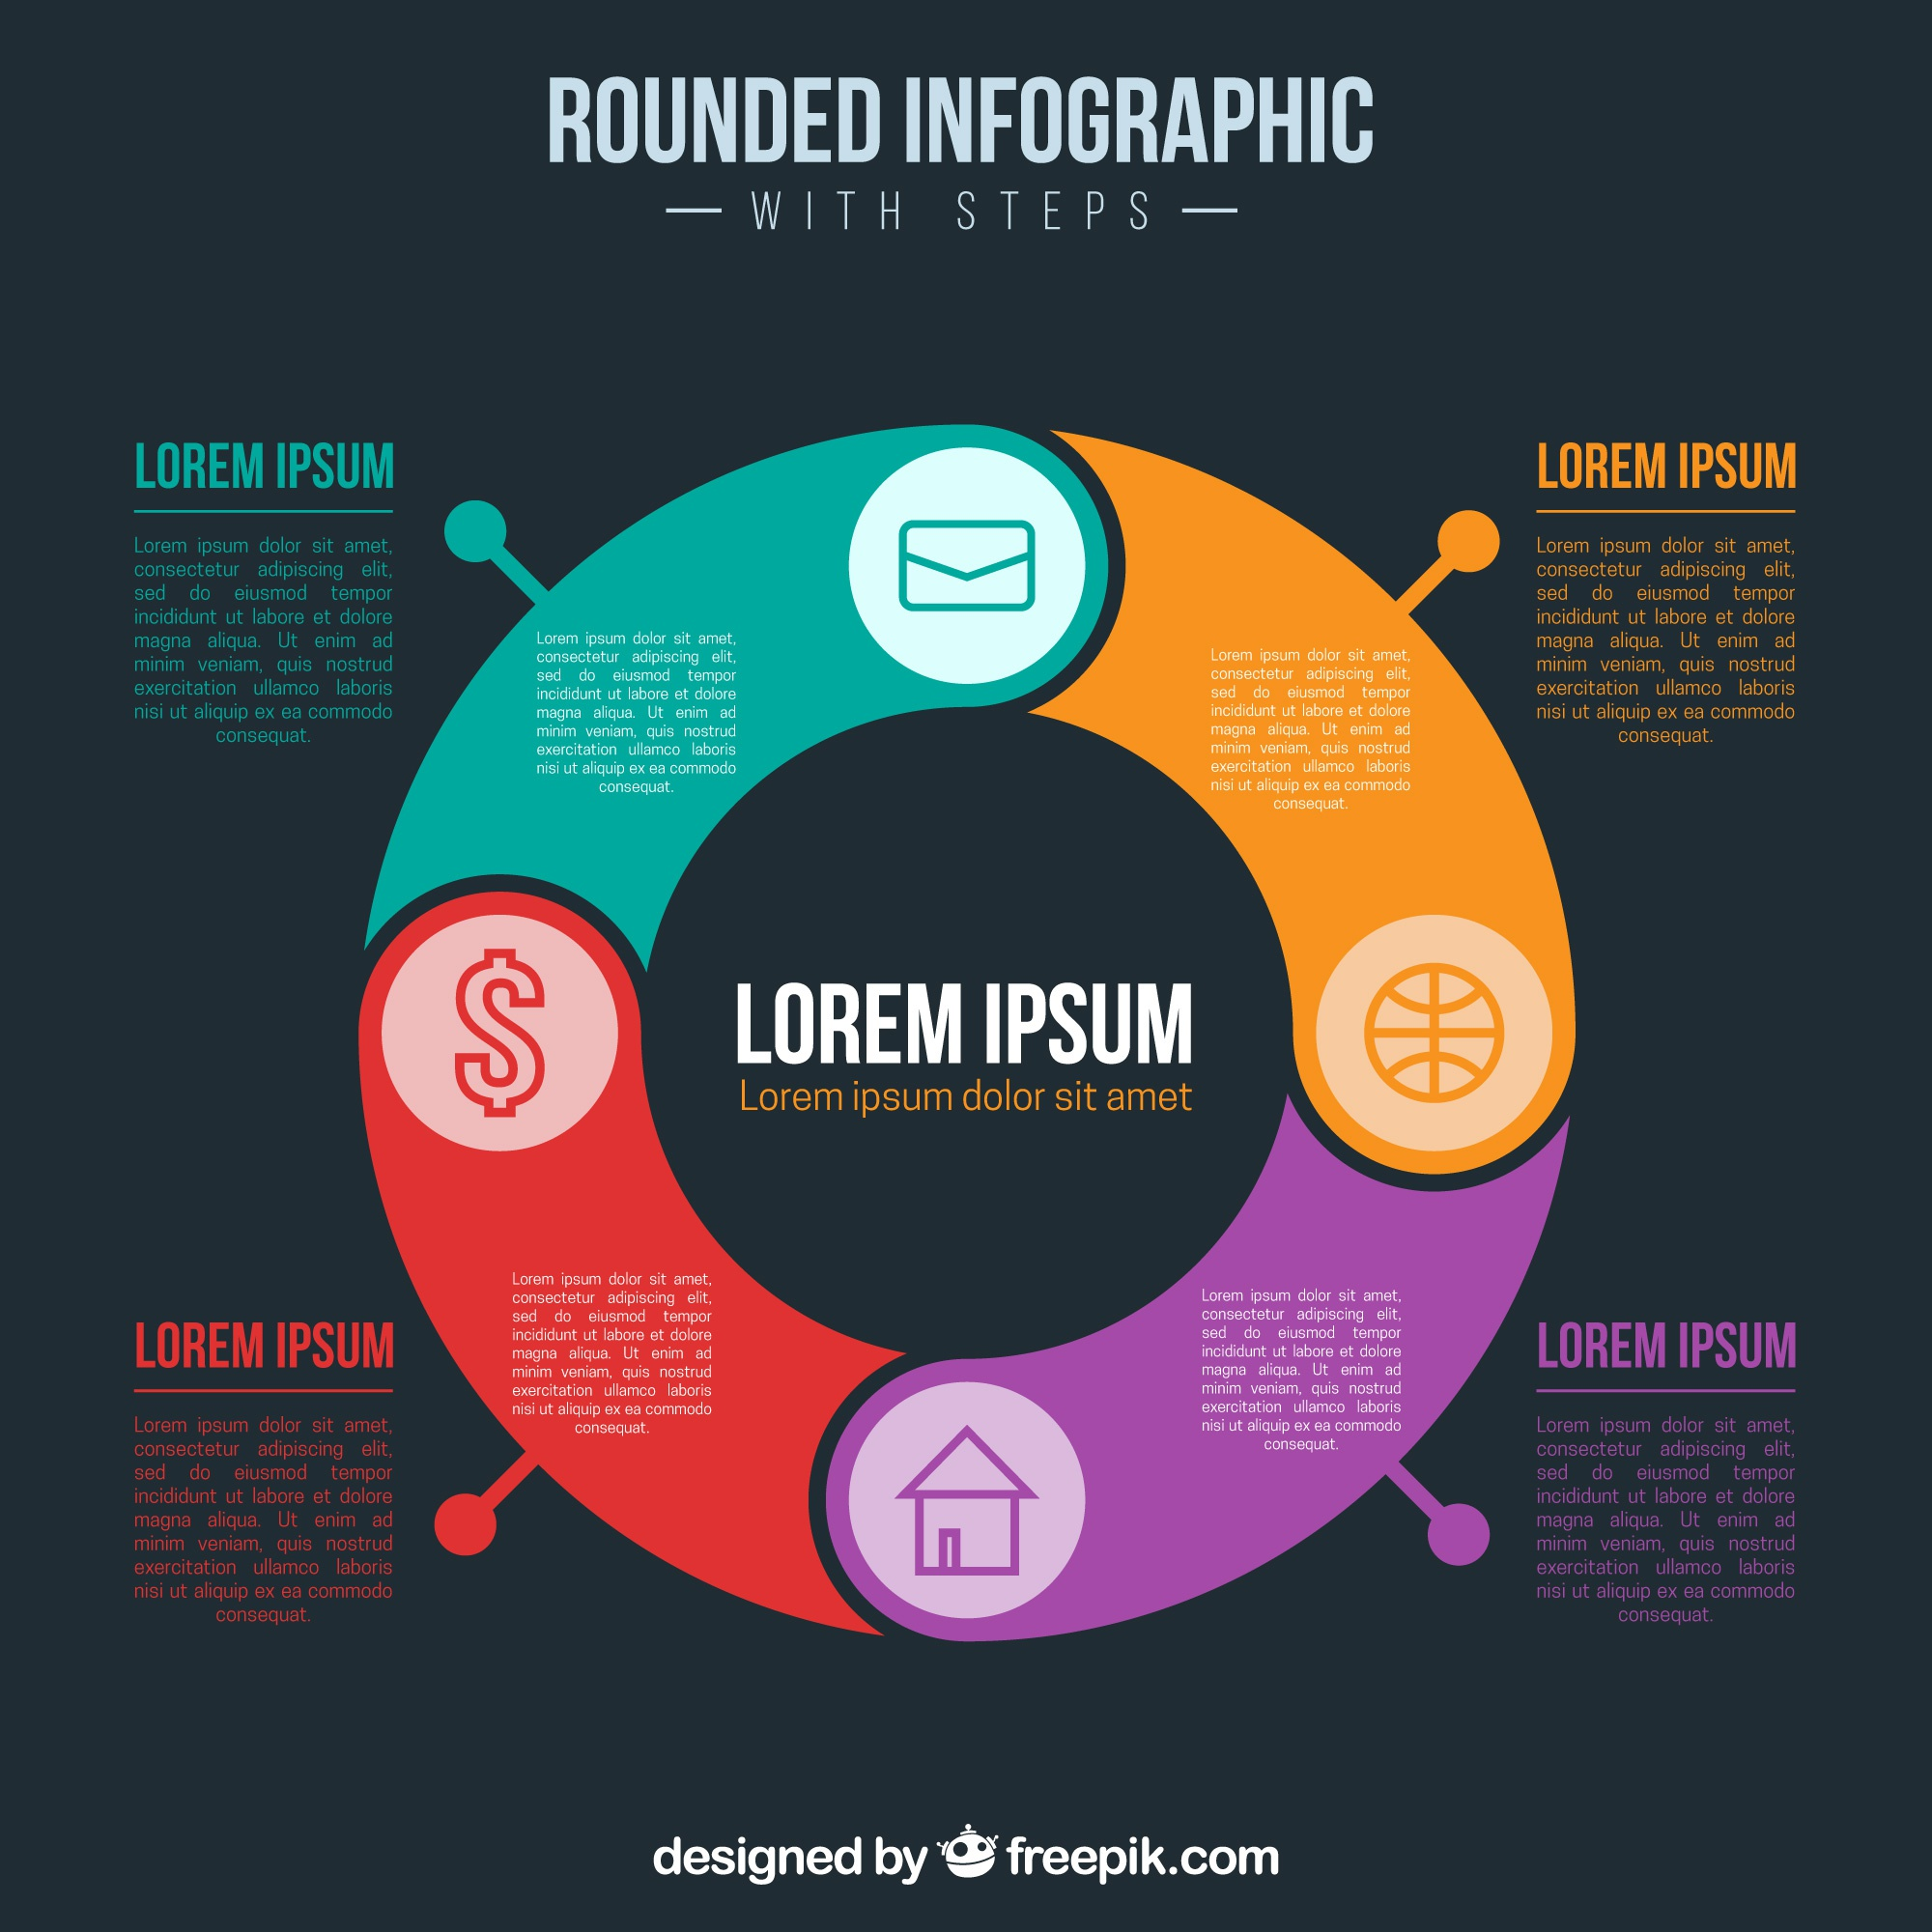 Rounded infographic with steps